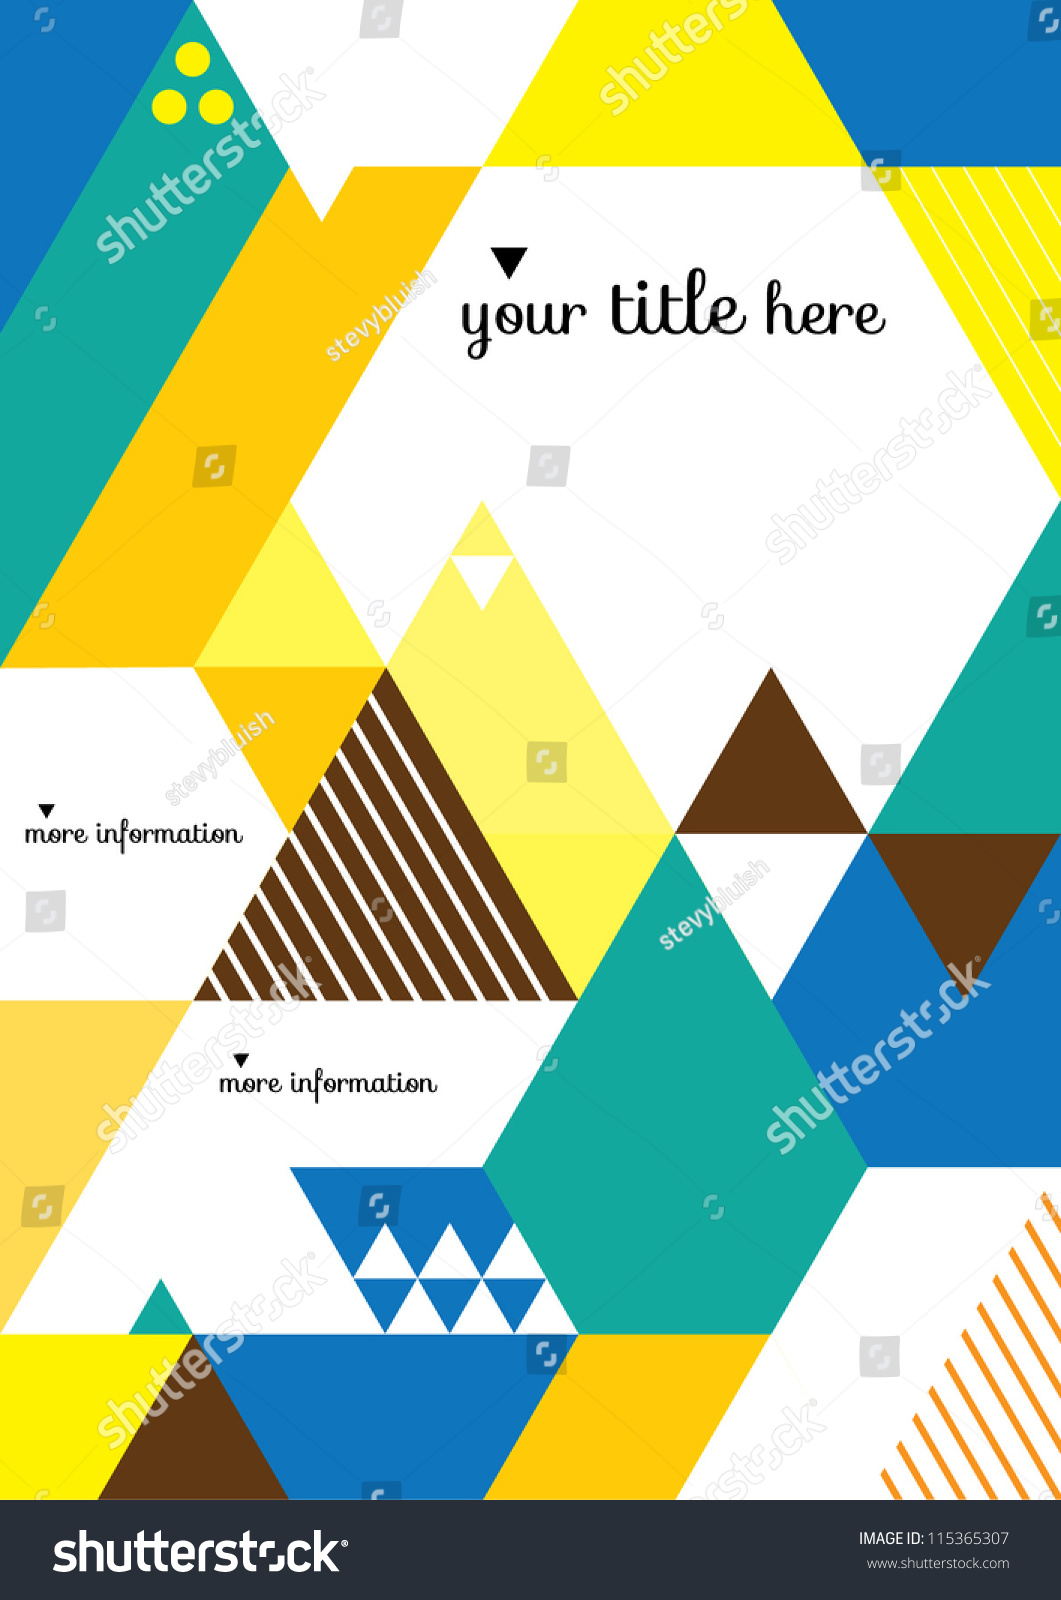 Book Cover Design Abstract : Abstract geometric background vector illustration book